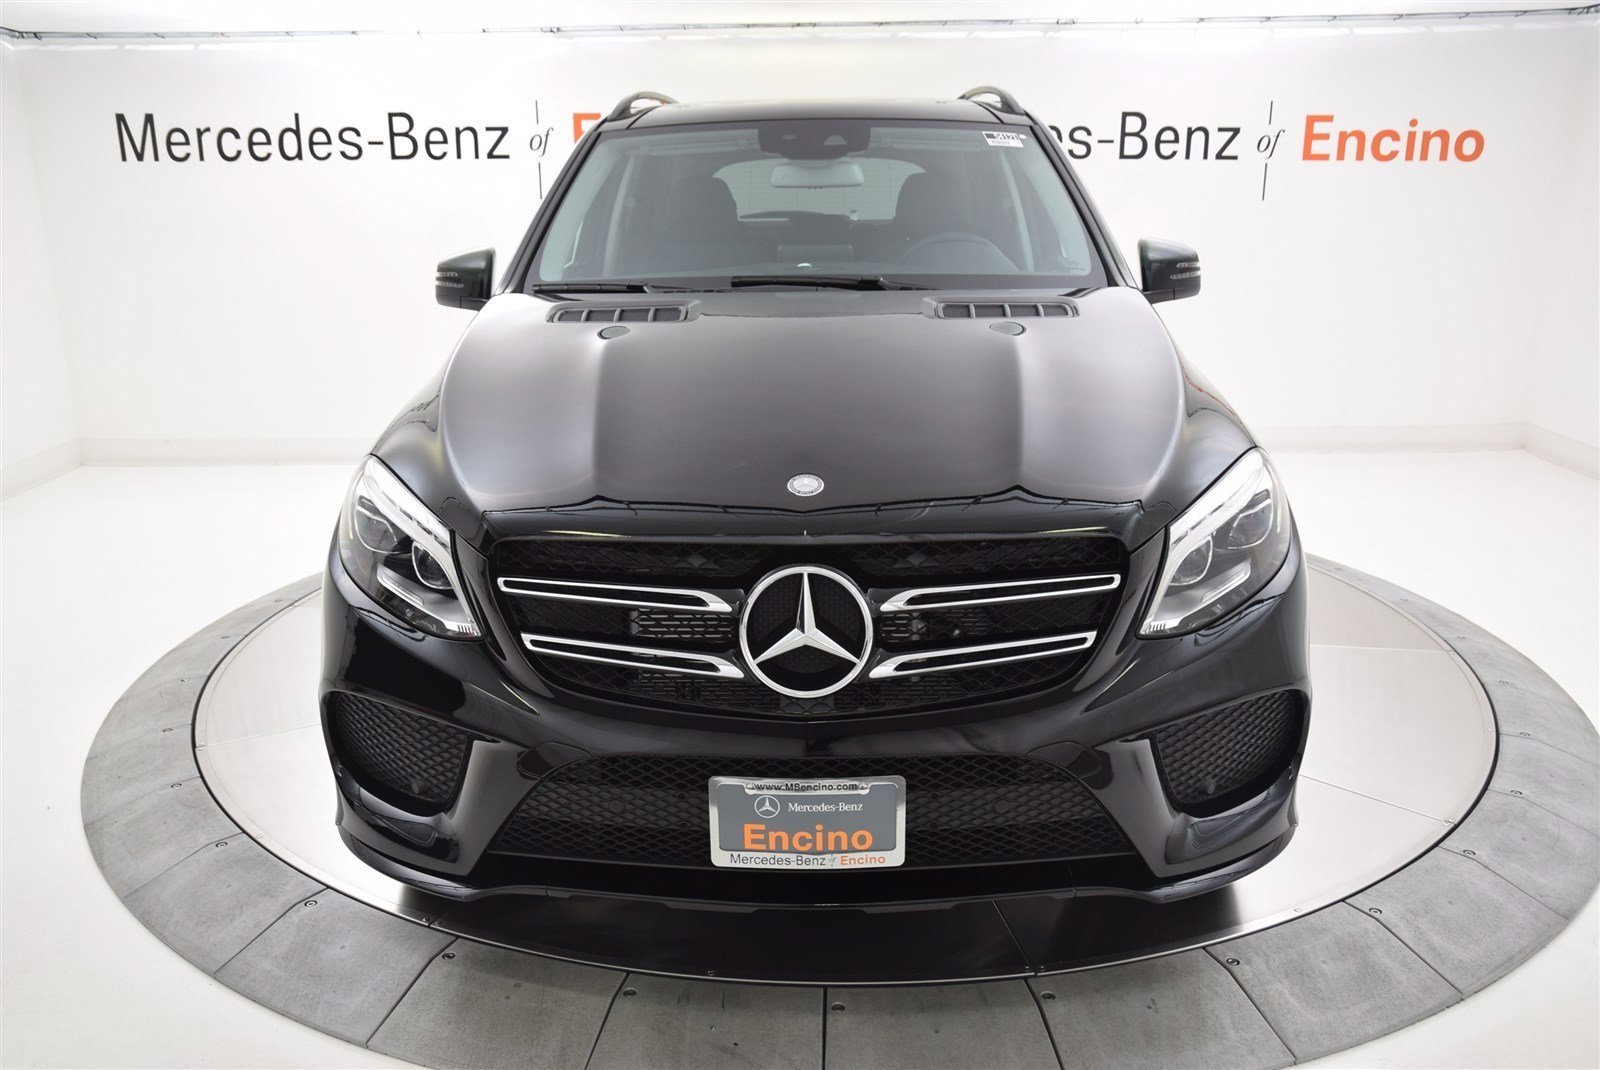 new 2016 mercedes benz gle gle550e 4matic sport utility in encino 54121 mercedes benz of encino. Black Bedroom Furniture Sets. Home Design Ideas